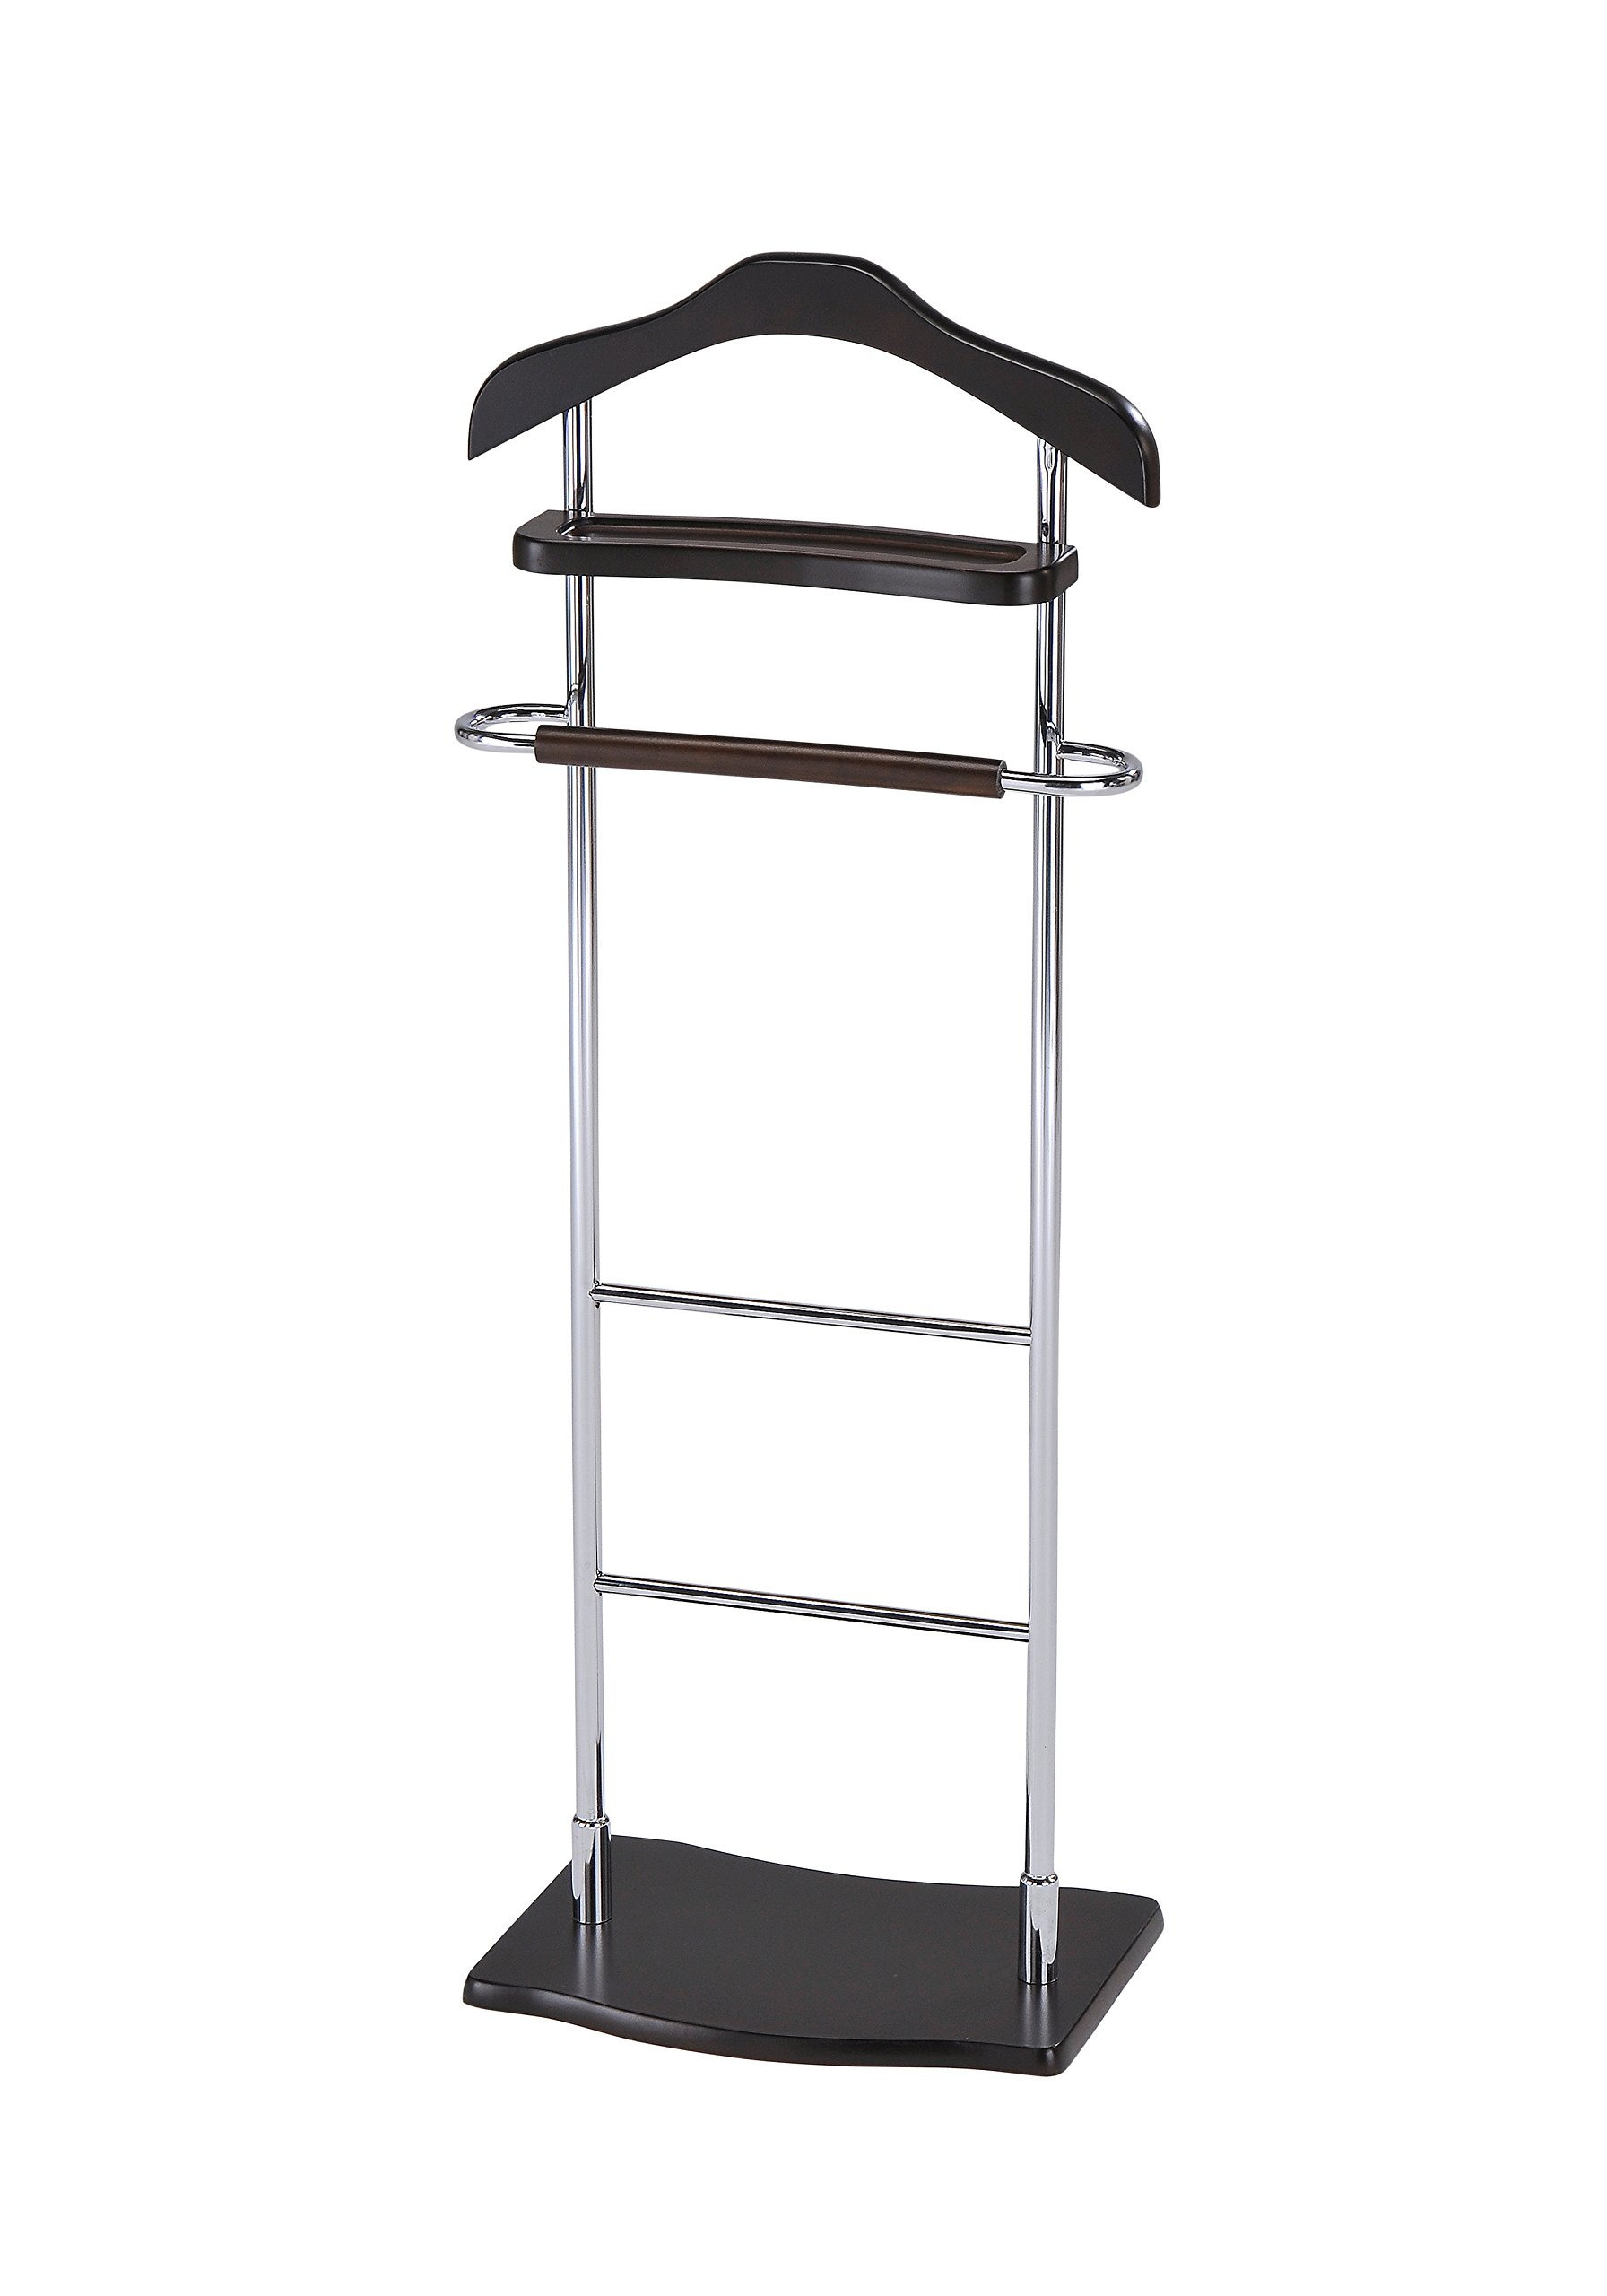 InRoom Designs CH-4181 Kings Brand Chrome Finish Wood and Metal Suit Valet Rack Stand Organizer, Walnut